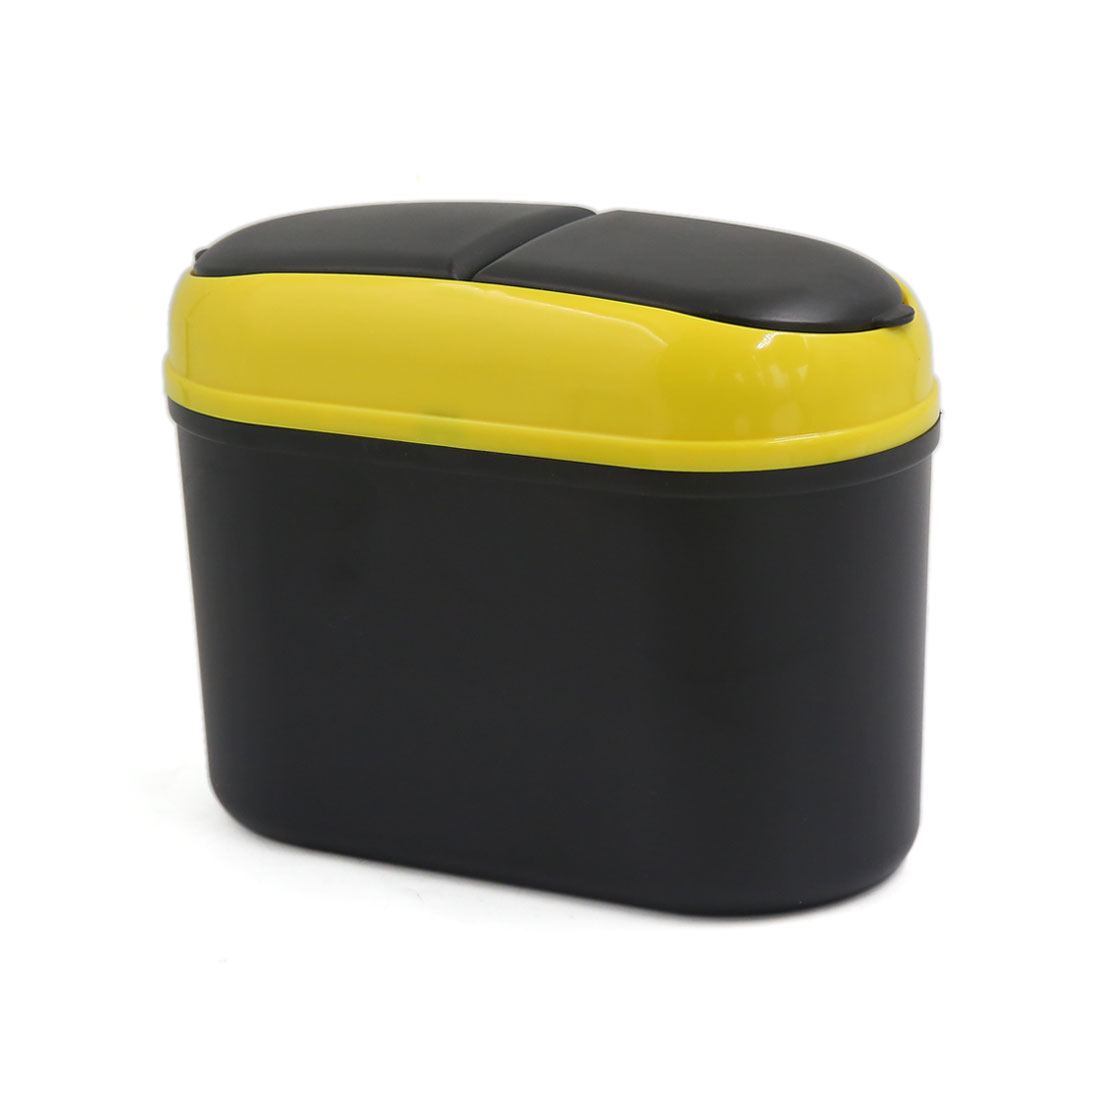 Car Trash Rubbish Can Garbage Dust Dustbin Box Case Holder Bin Hook Black Yellow